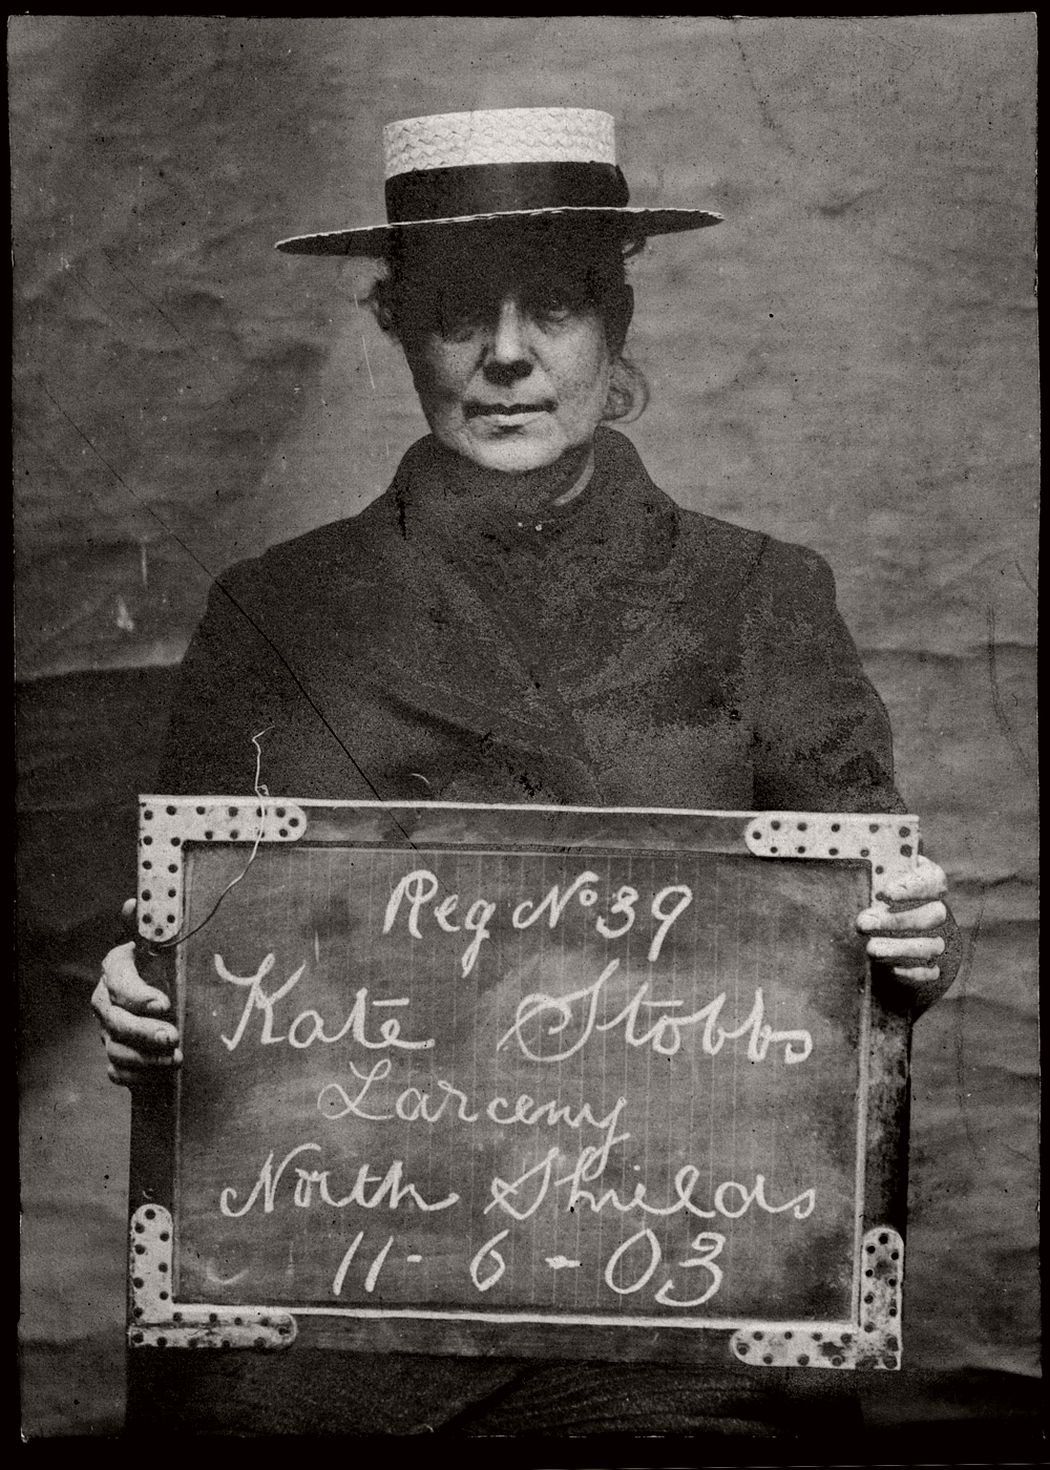 vintage-mug-shot-of-women-criminals-from-north-shields-1903-1905-10